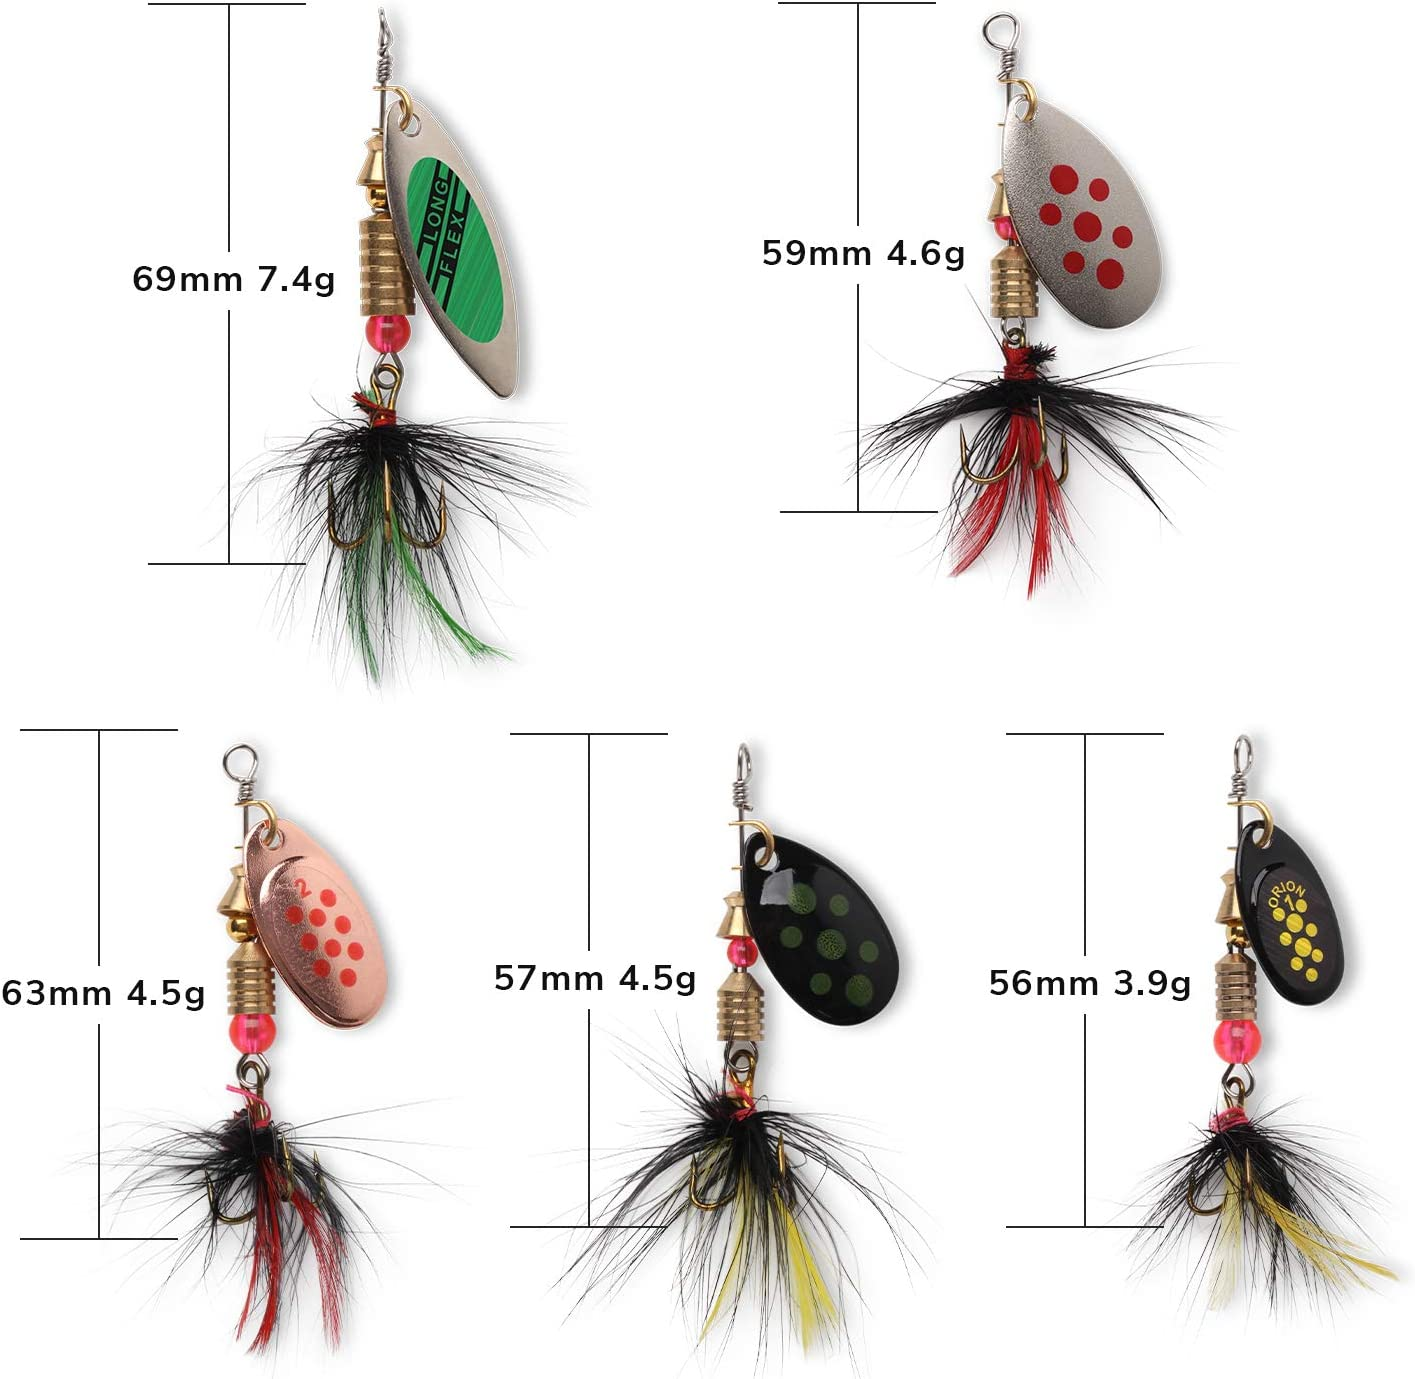 10pcs Fishing Lure Spinnerbait, Bass Trout Salmon Hard Metal Spinner Baits Kit with Tackle Boxes : Sports & Outdoors